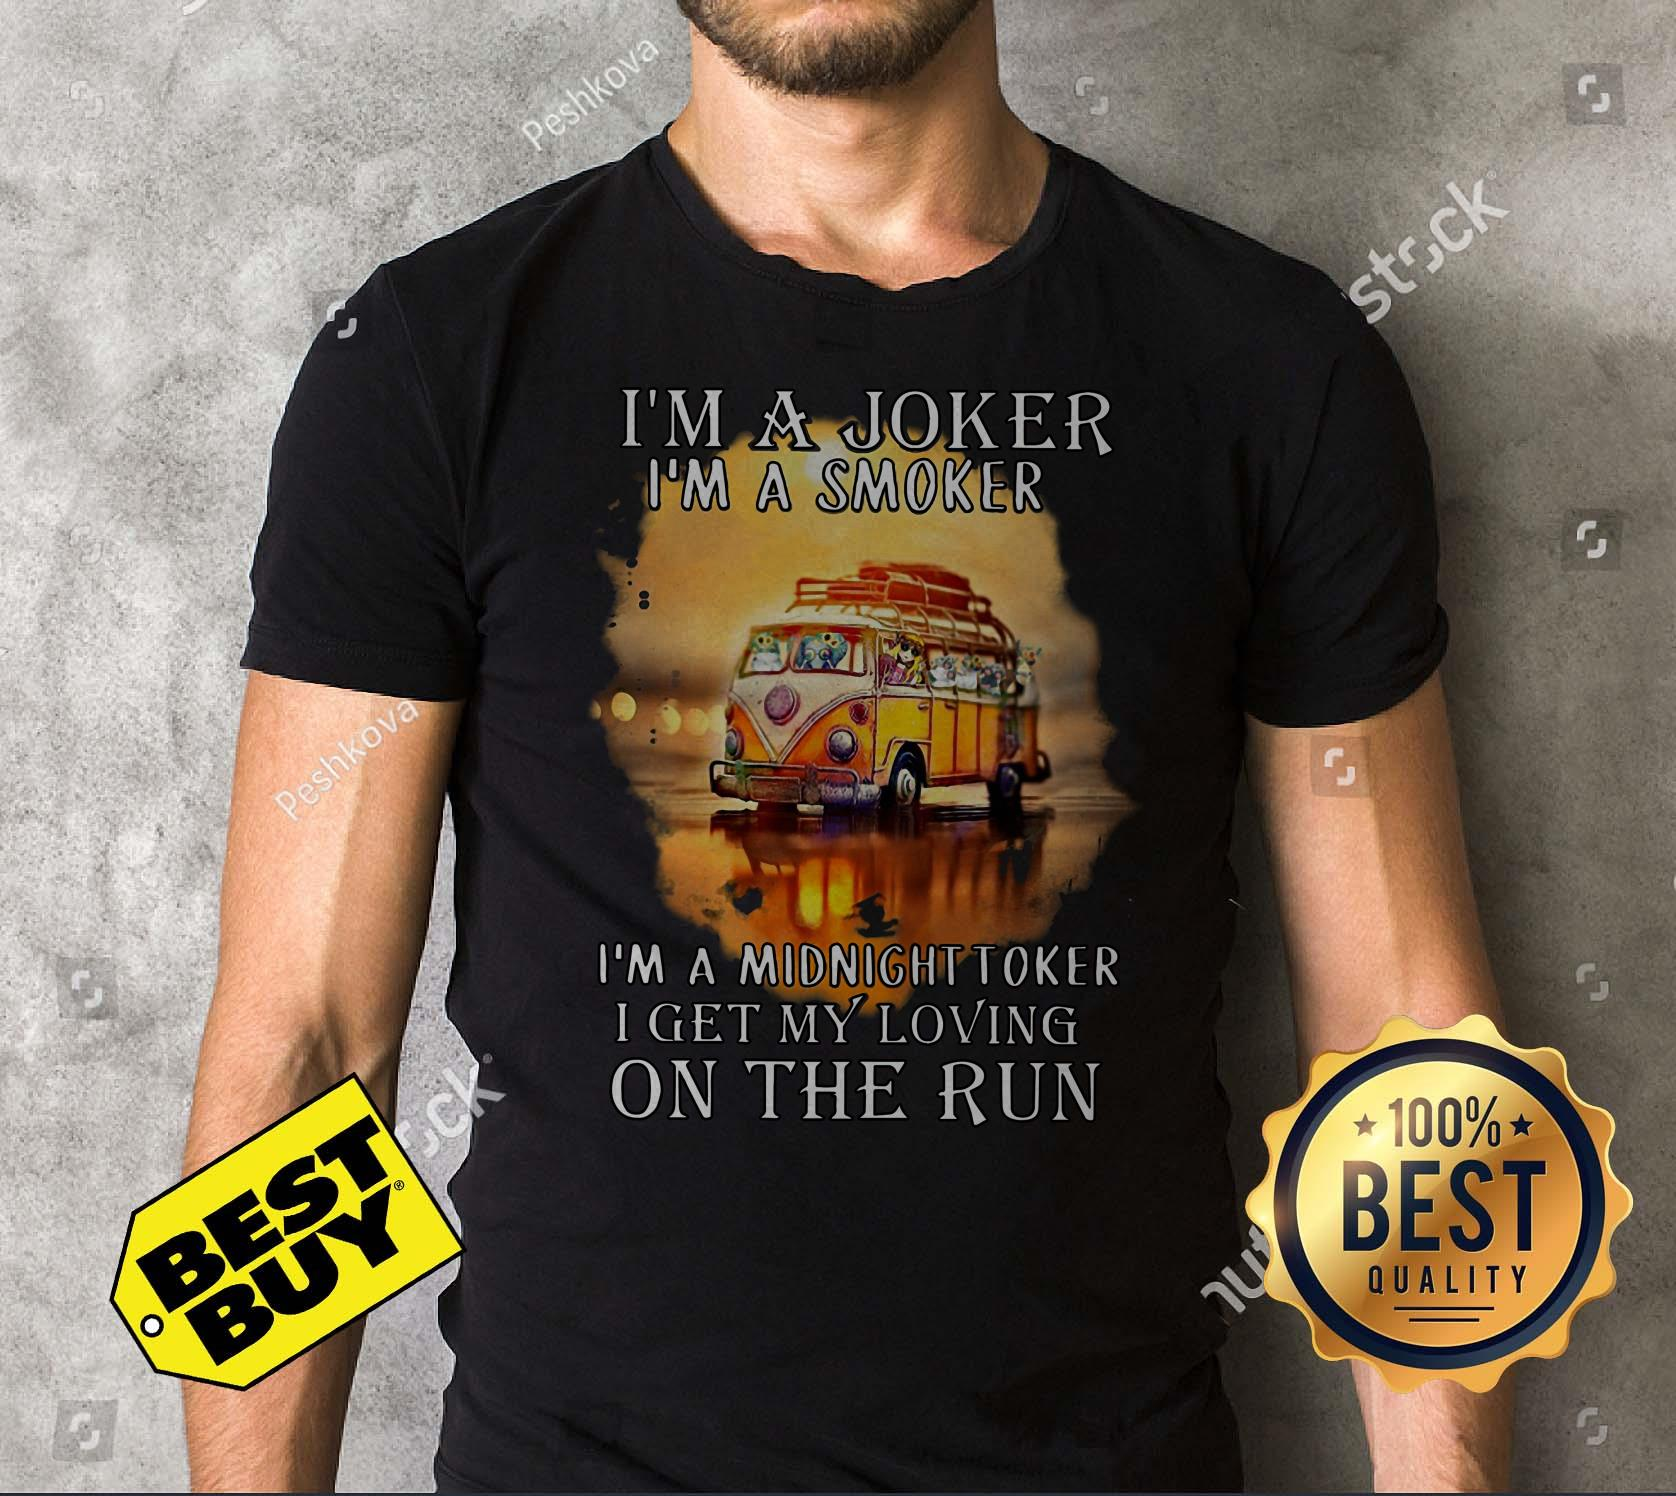 I'm A Joker A Smoker A Midnight Toker Get My Loving On The Run hoodie